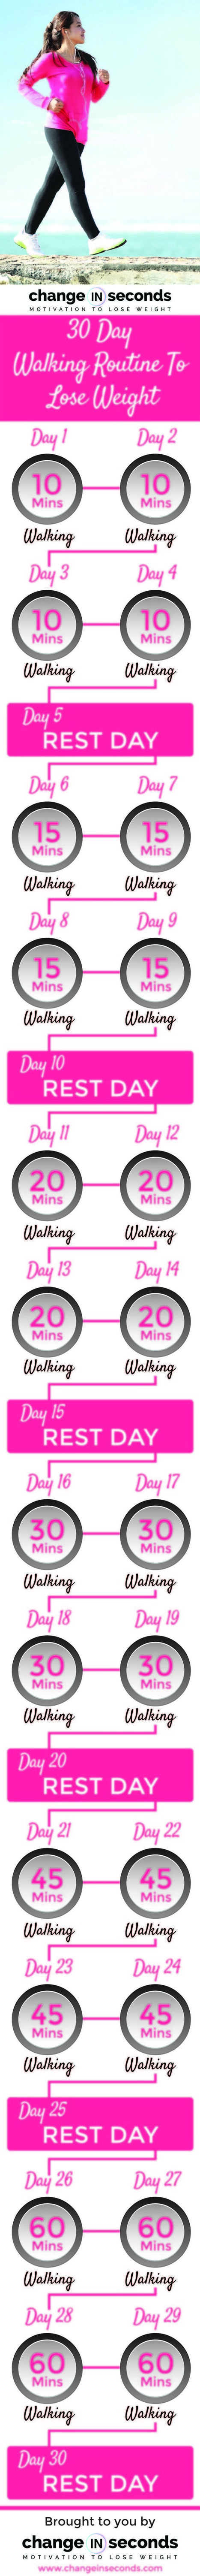 30 Day Walking Routine To Lose Weight (Download PDF) | One Step at a Time | Scoop.it